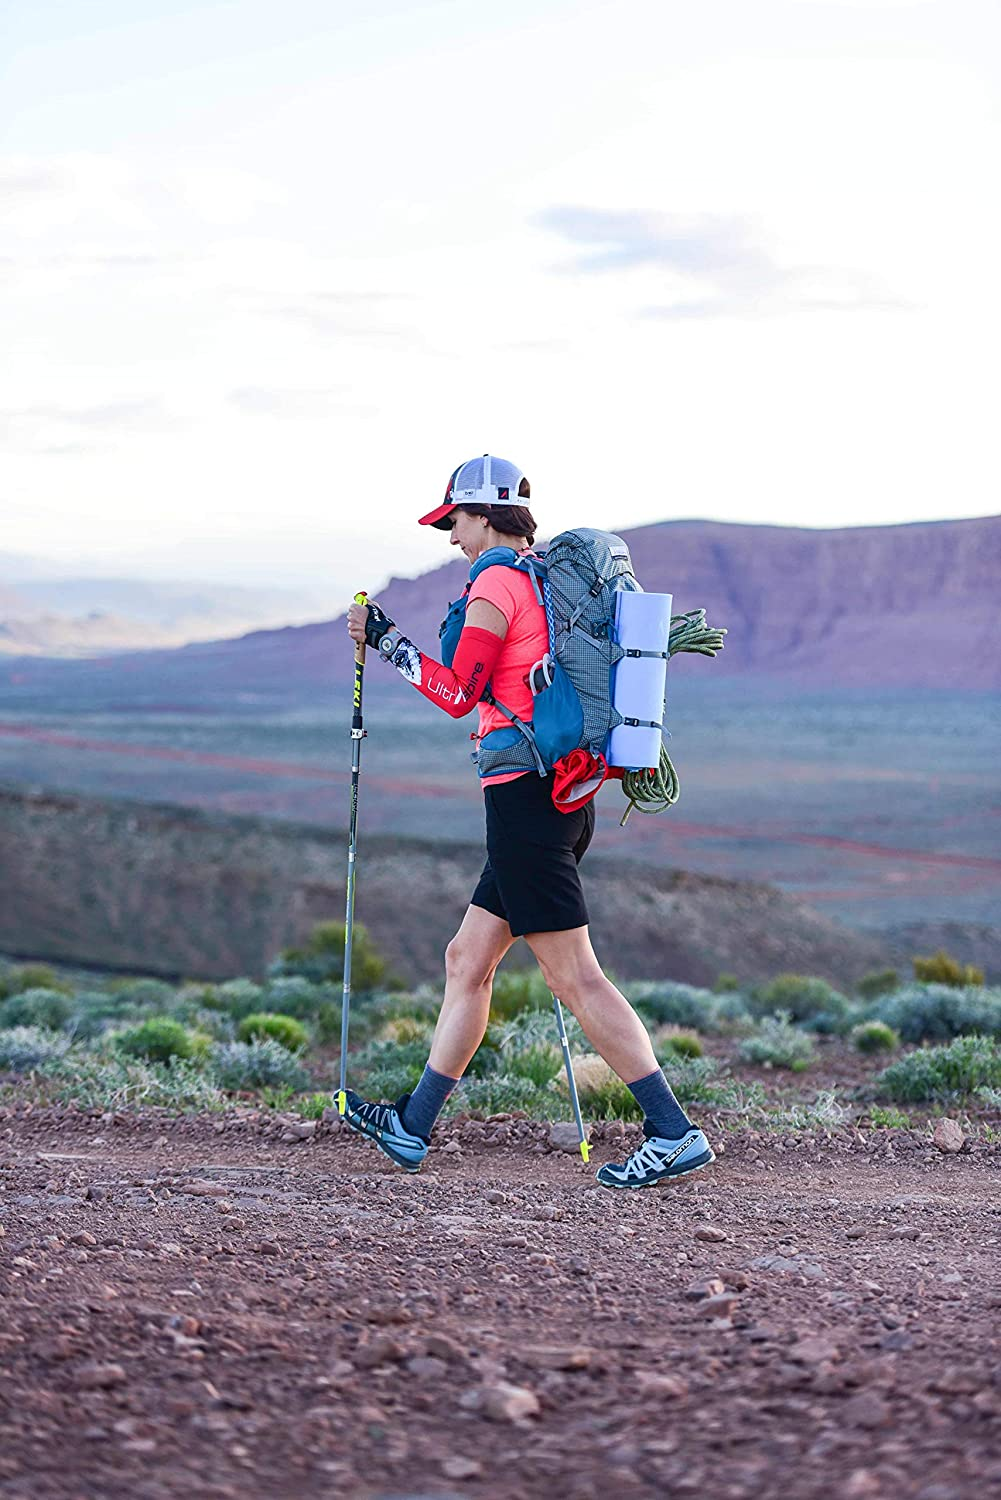 Ultraspire Epic XT Lightweight Multi-Day Hiking Backpack | 25L Capacity | Day Hikes, Trail Running, Mountaineering, Travel | Hydration Bladder Compartment, Rapid Access Pockets, and Universal Fit